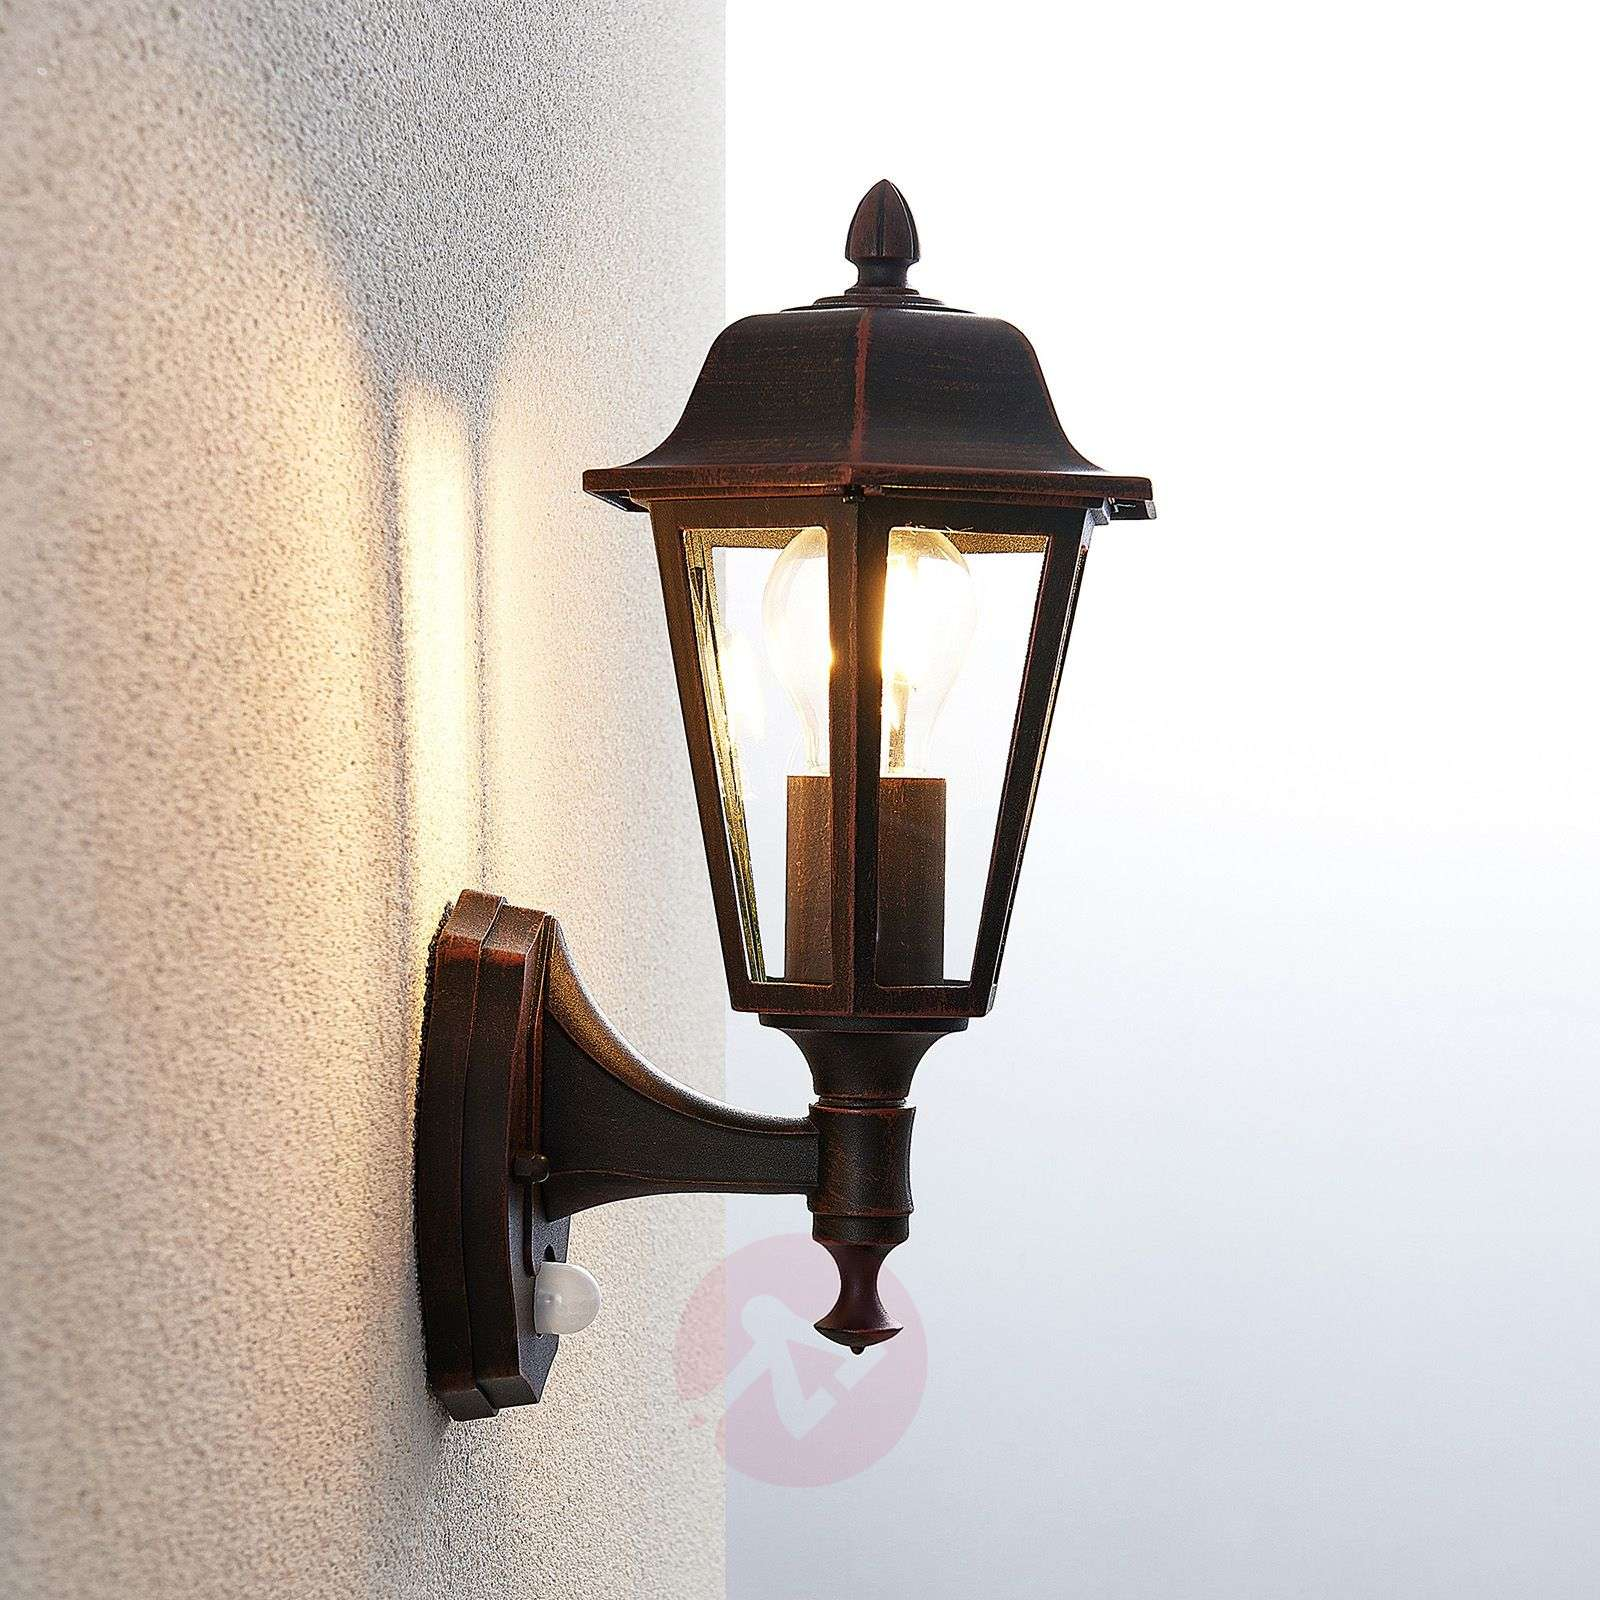 Noor Outdoor Wall Light With A Motion Detector Lights Co Uk